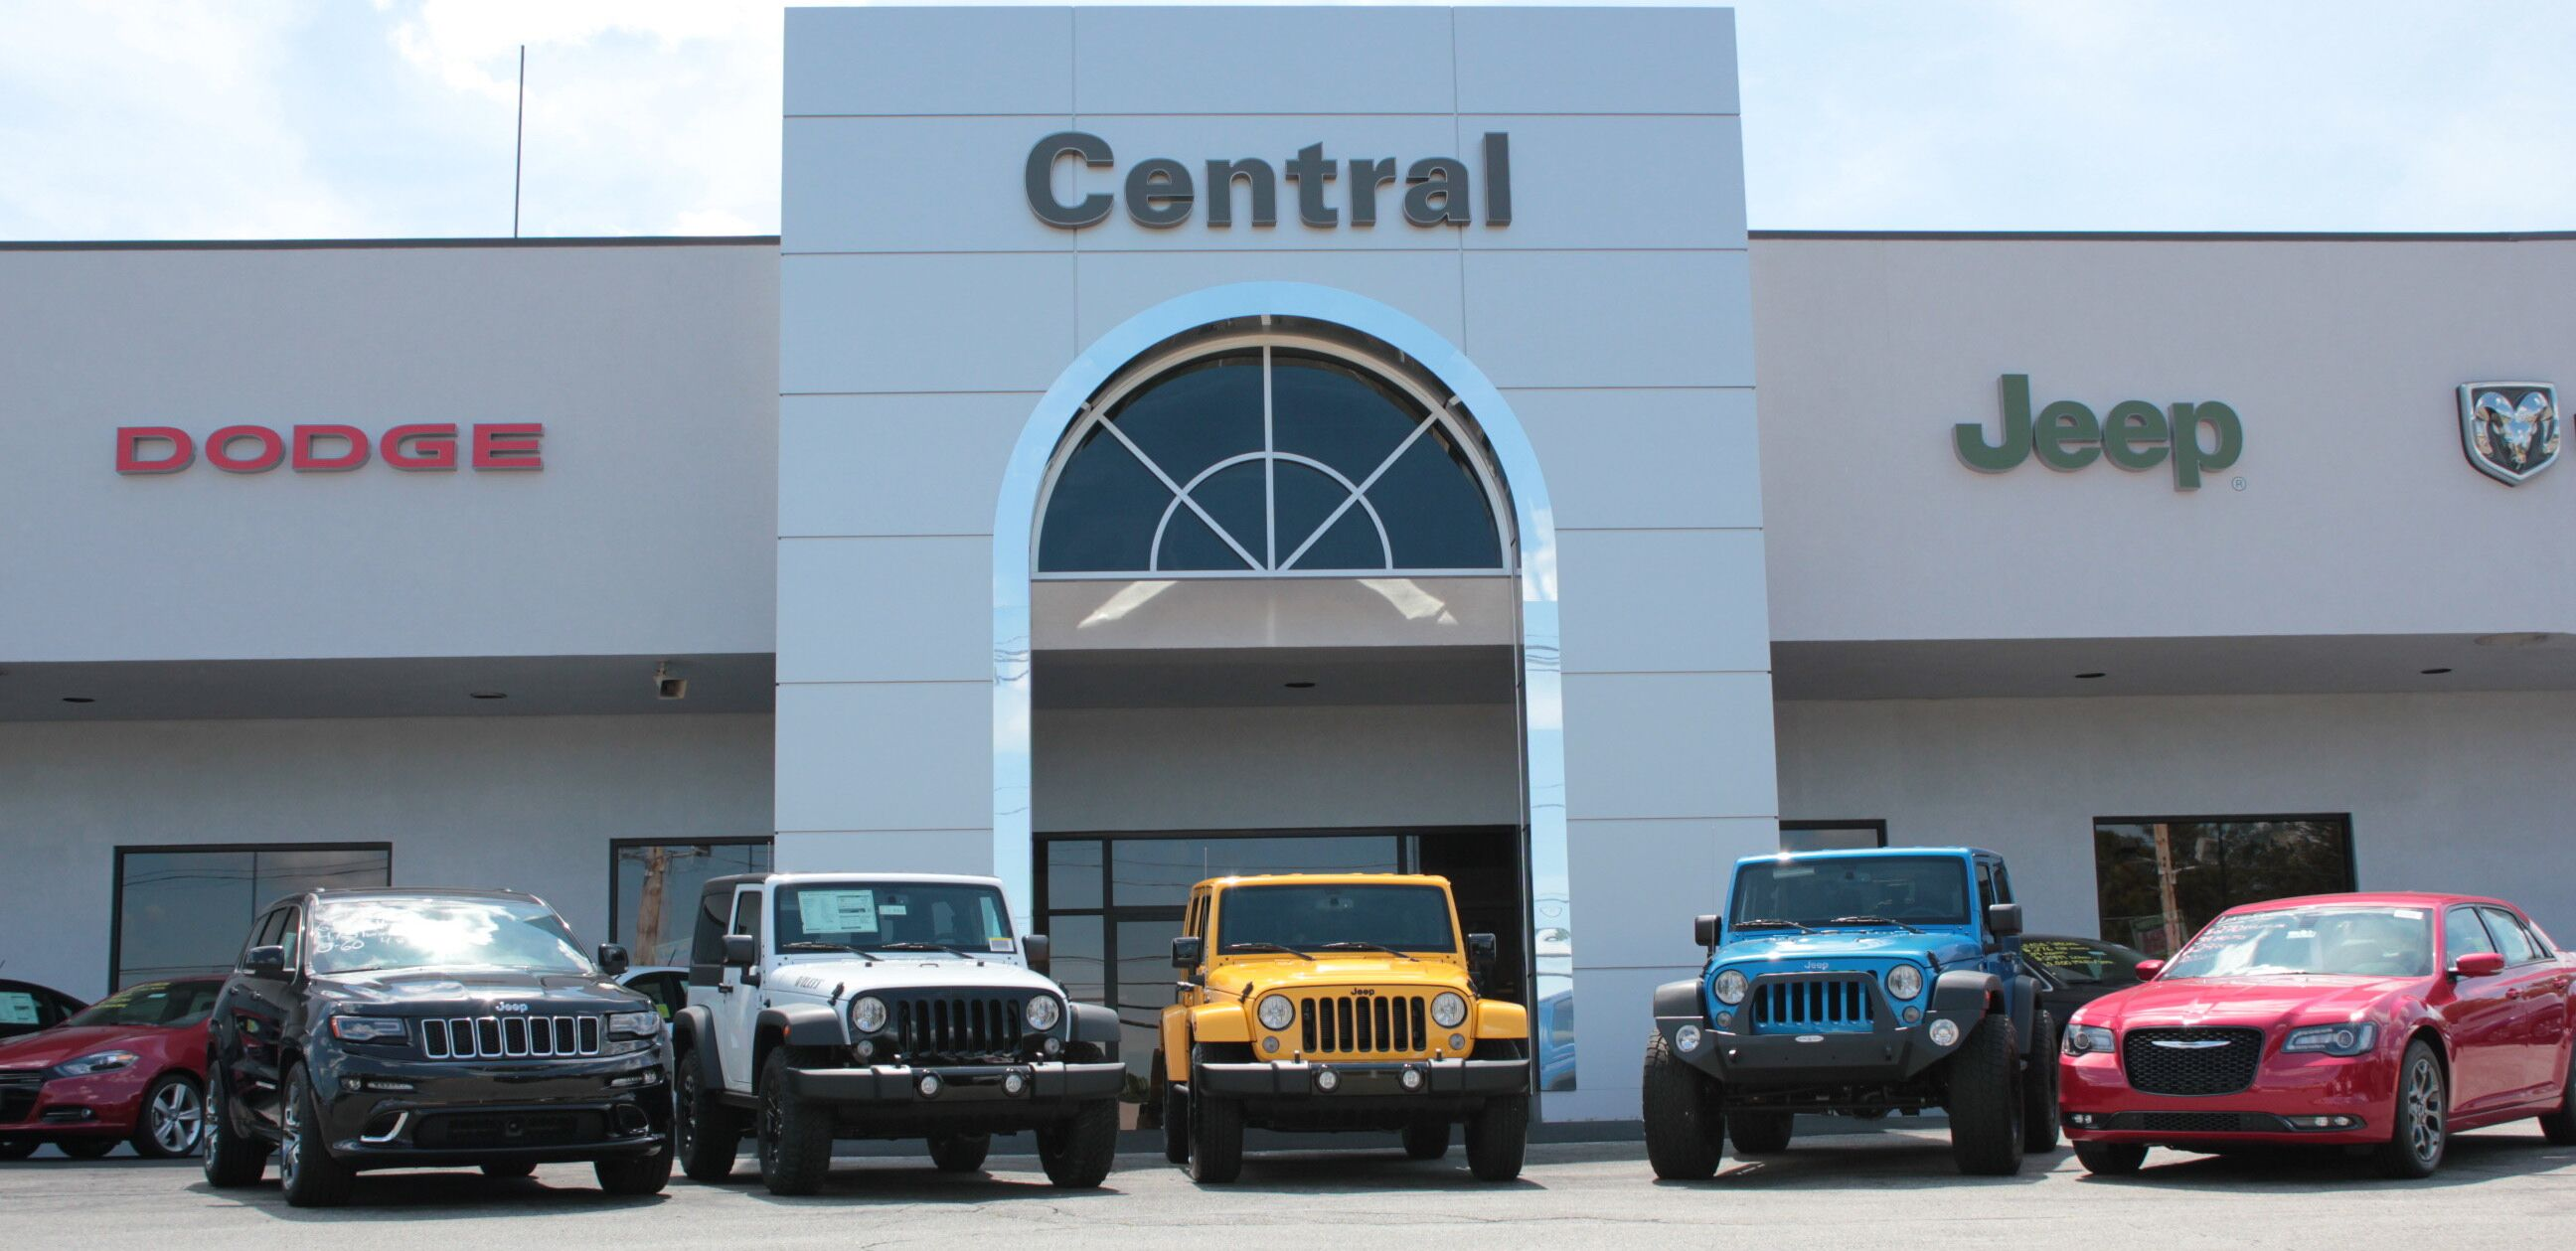 About Central Jeep Chrysler Dodge Ram Of Raynham A. Stolen Passport Identity Theft. Logmein Remote Control Not Working. Online Computer Science Degree Georgia Tech. Credit World Midland Tx Cosmetic Surgery Fail. Credit Card Dining Rewards Pest Control Boise. Chimney Repair Seattle Wa Orange Oil Termites. Small Project Management Software. Va Home Loan Information Buying A Ford Fiesta